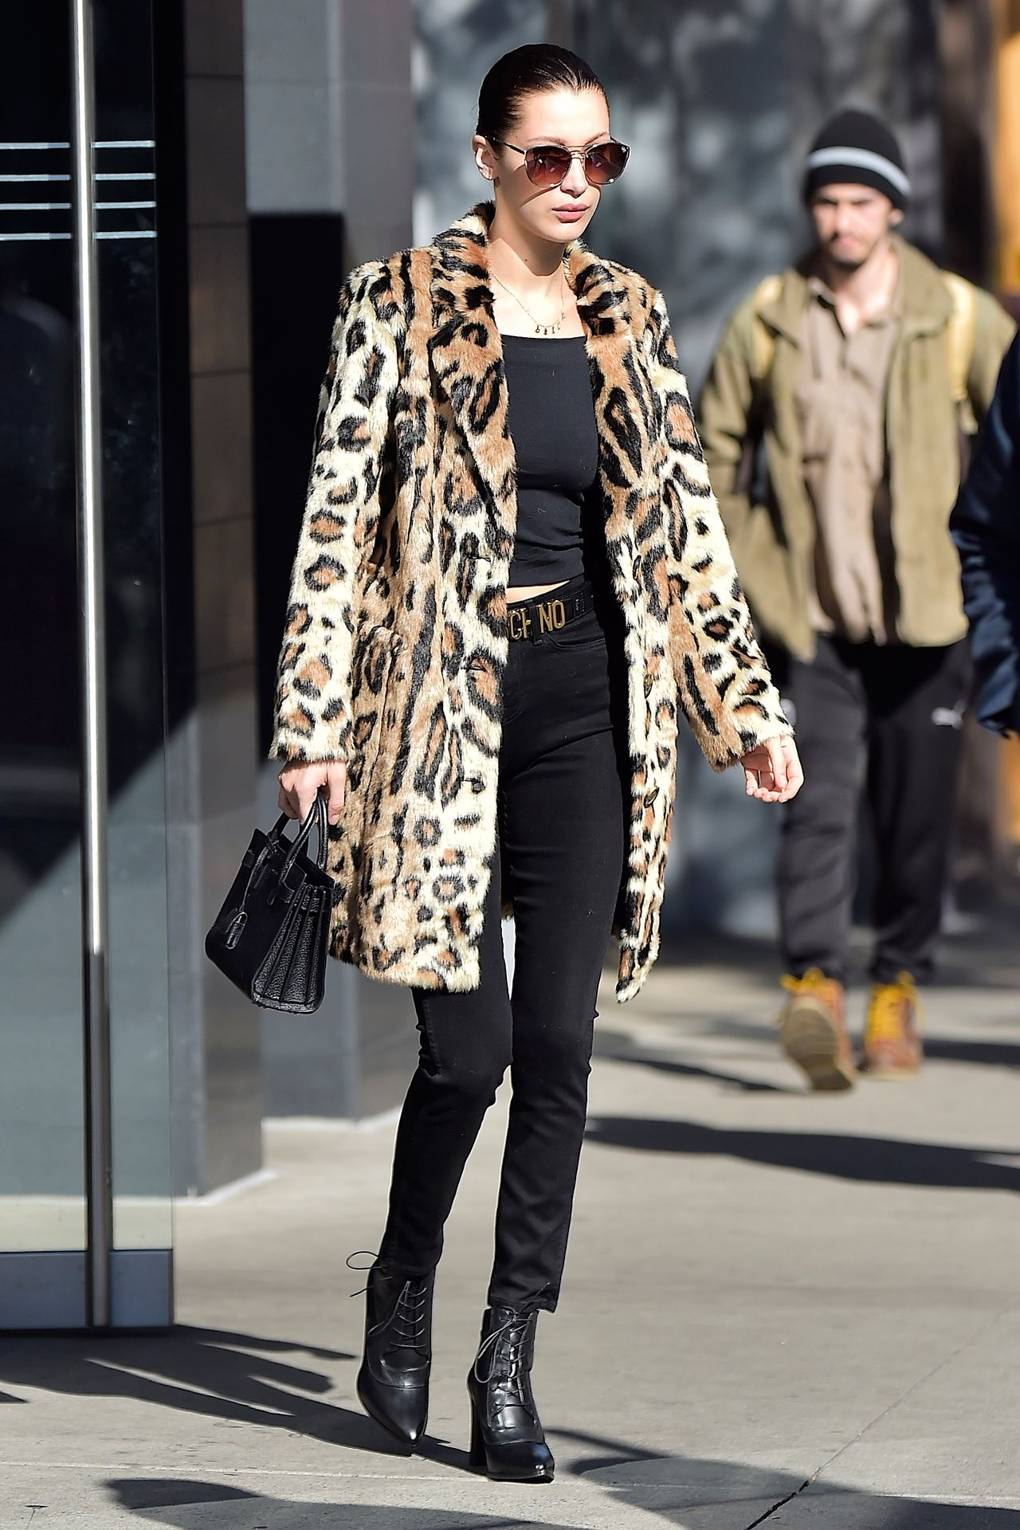 f59698fcb0e3 Celebrity Trend: The Leopard Print Coat | British Vogue